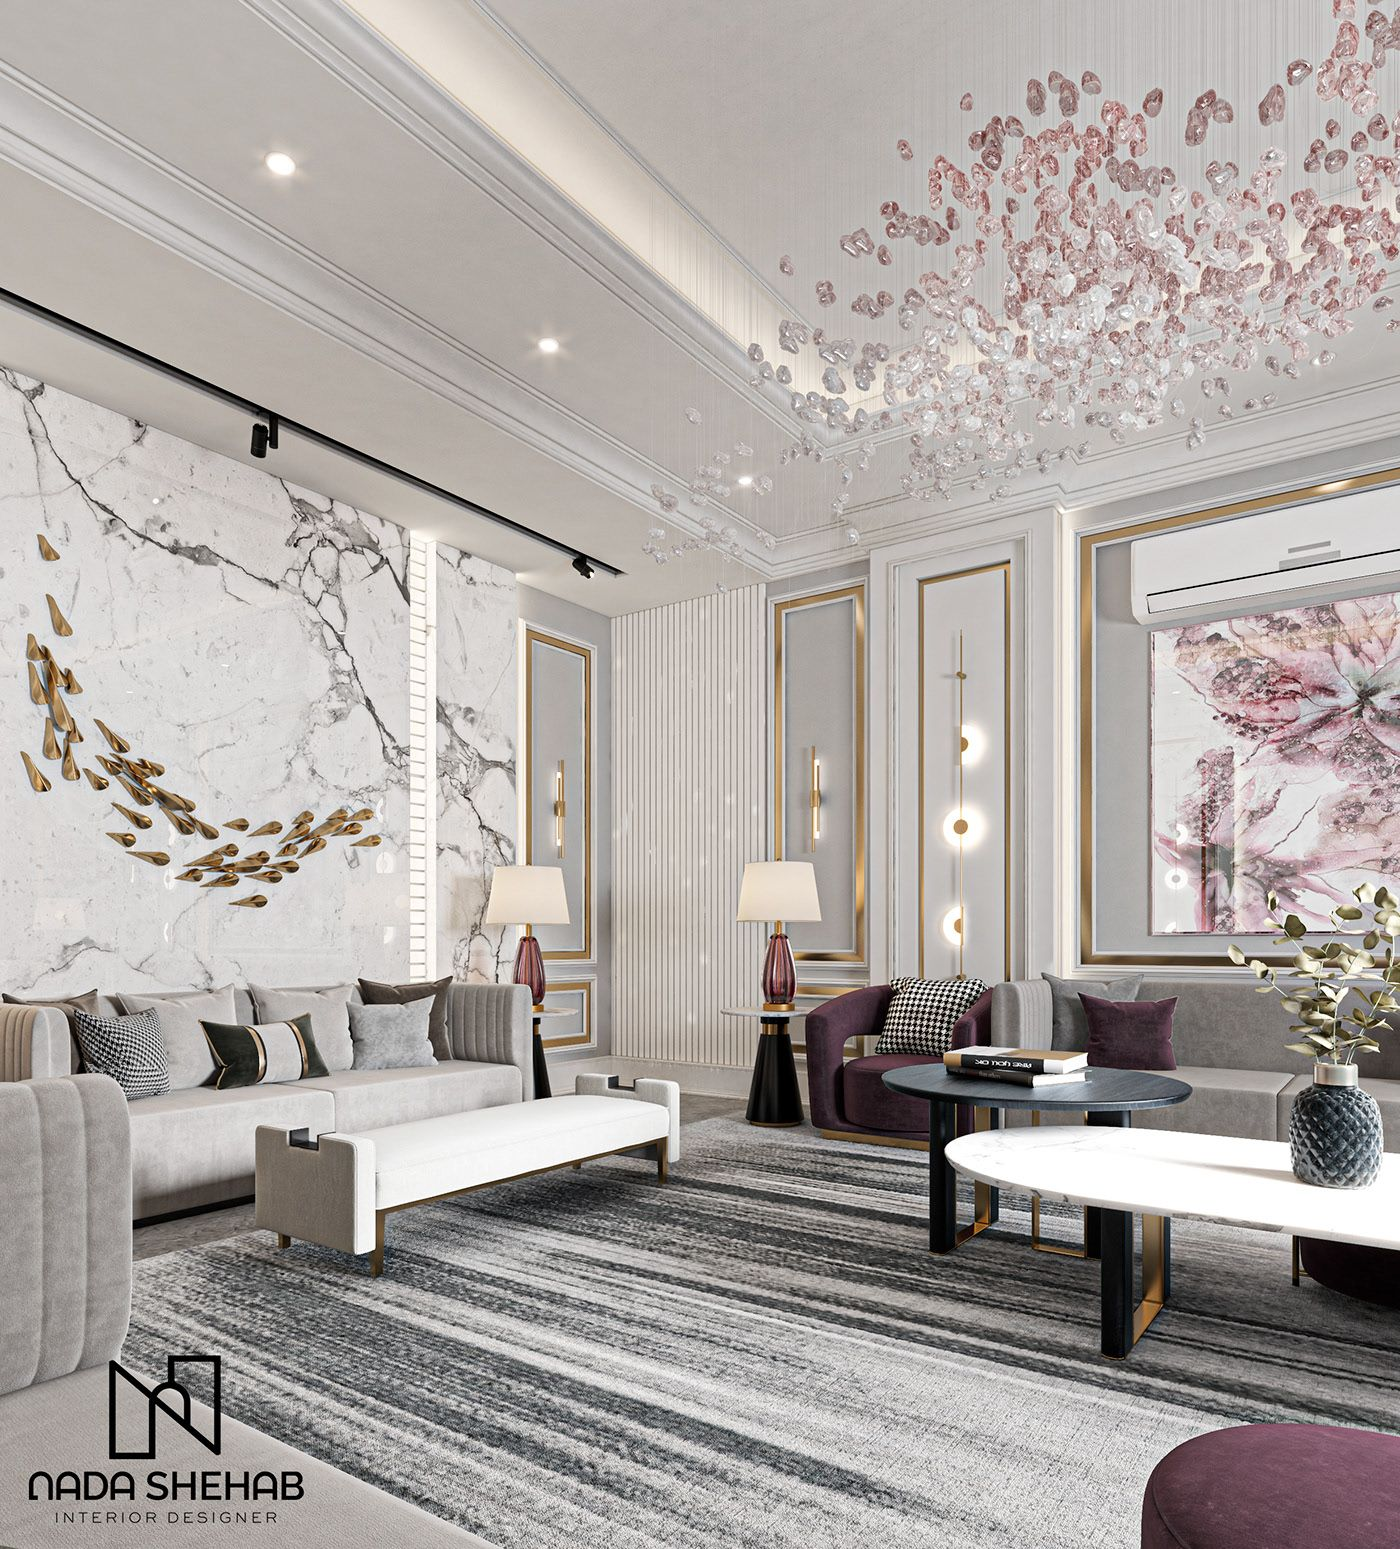 Neo Classical On Behance In 2021 Interior Design Home Interior Design House Interior